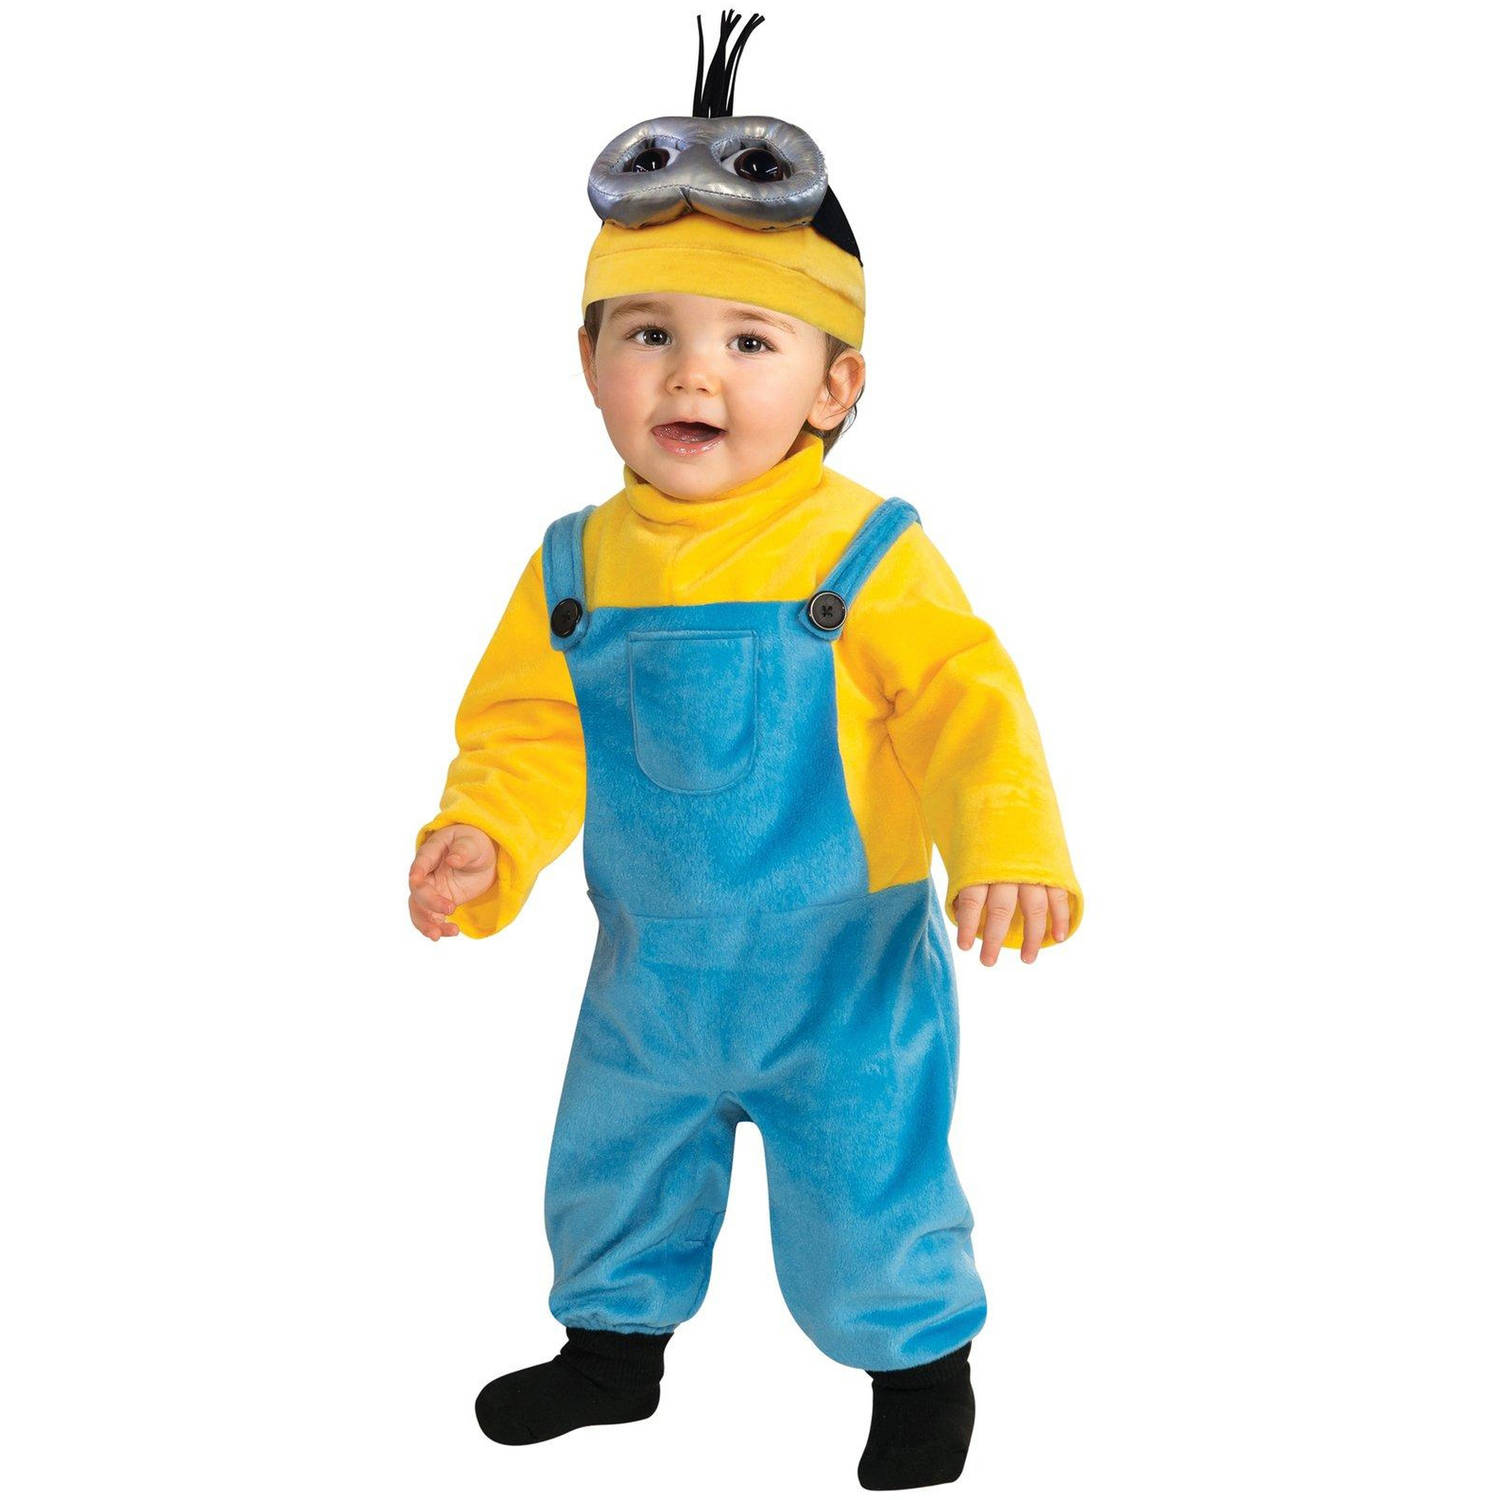 Minions Movie Kevin Toddler Halloween Costume, Size 3T 4T